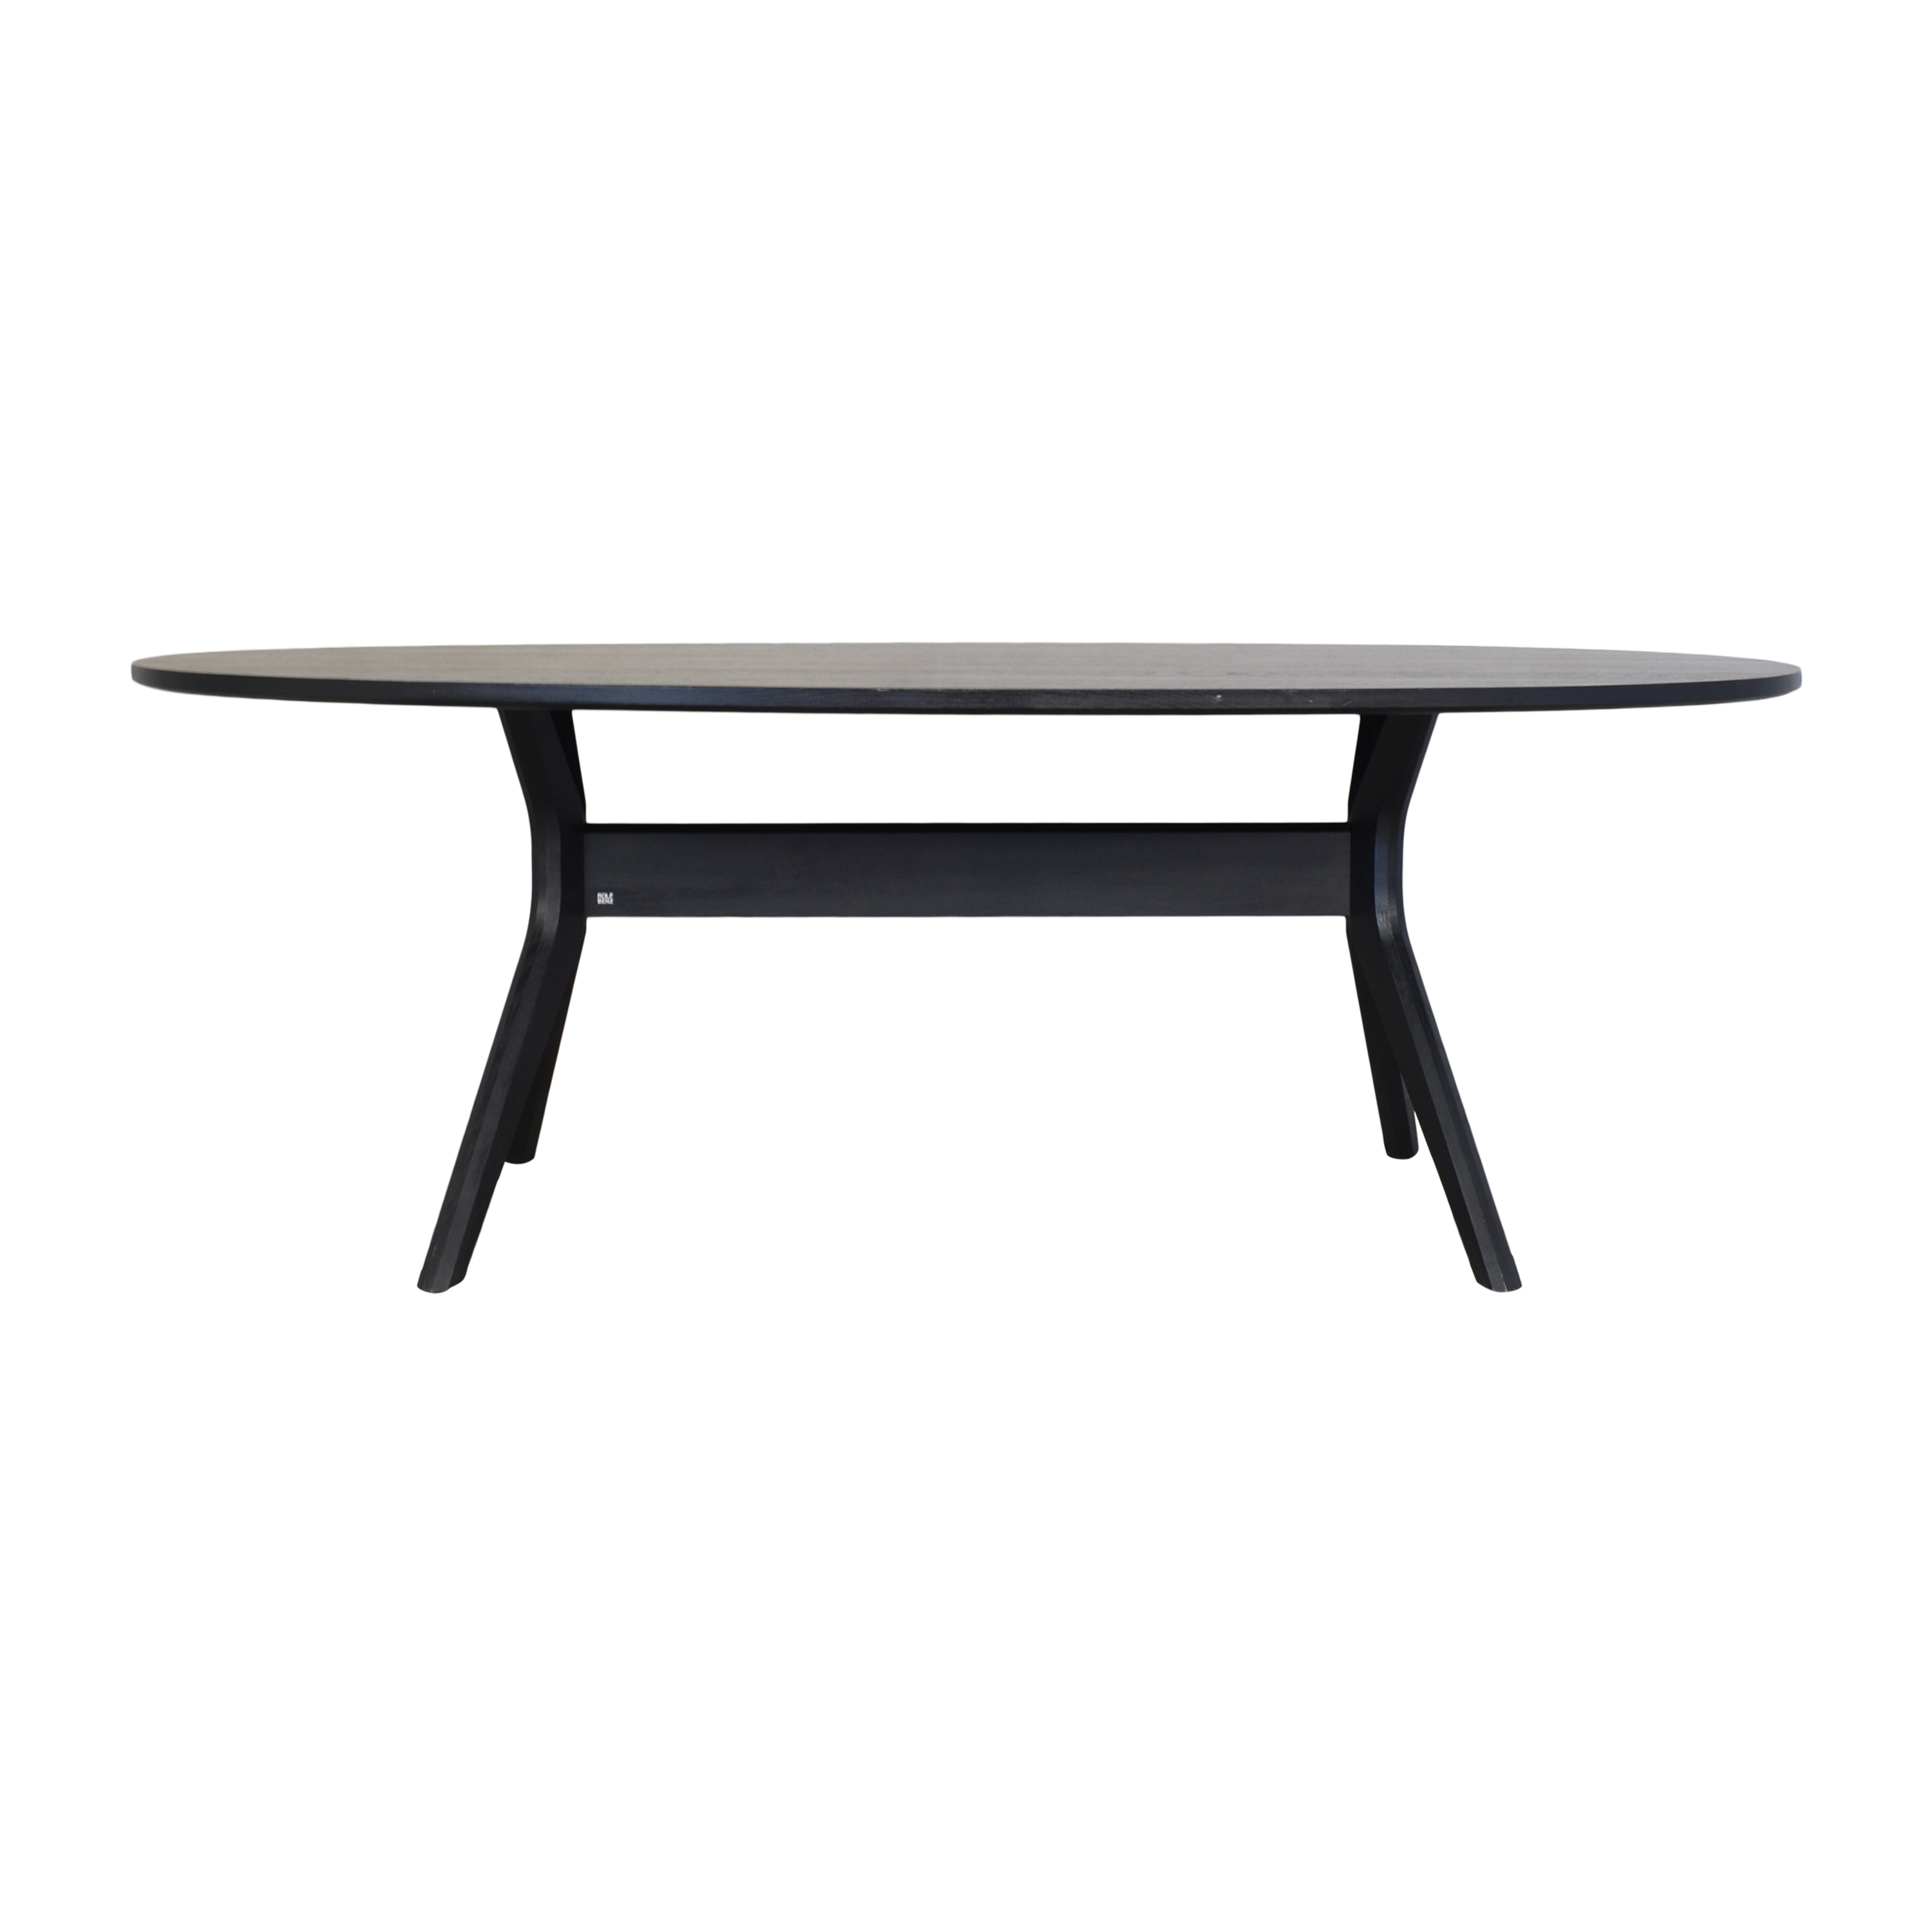 Rolf Benz Rolf Benz 965 Dining Table